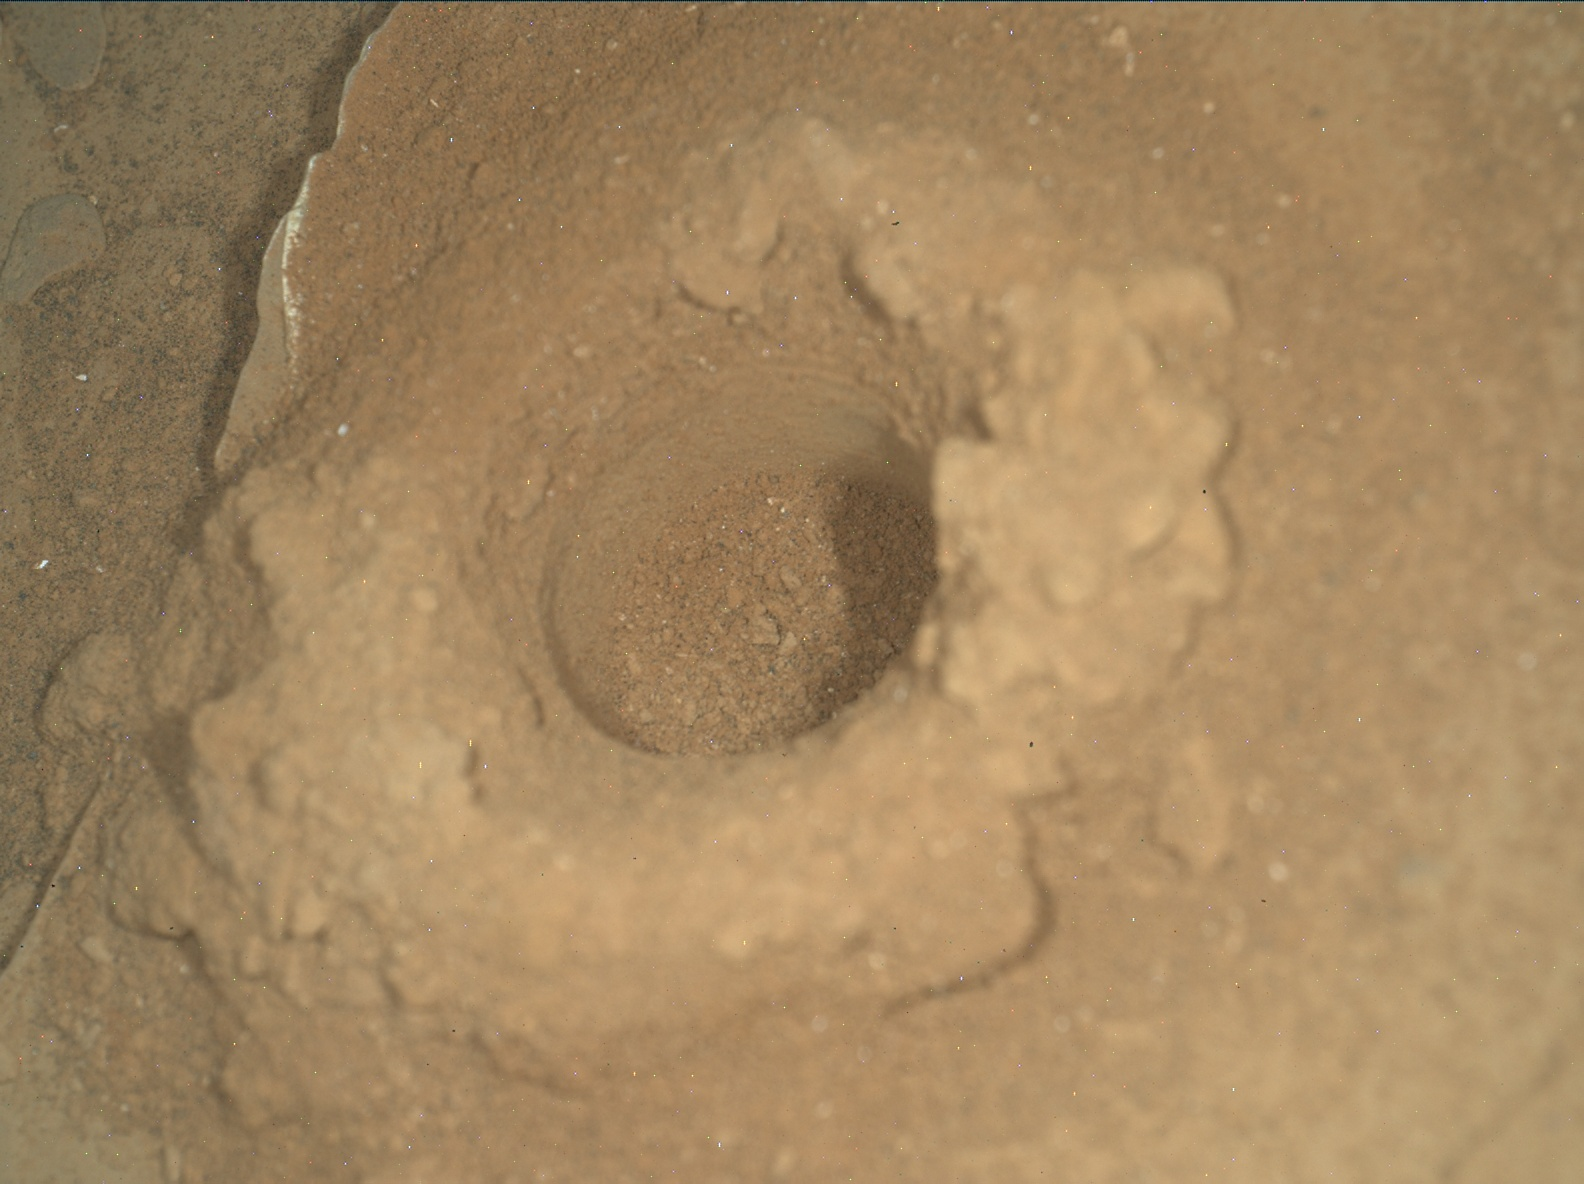 Nasa's Mars rover Curiosity acquired this image using its Mars Hand Lens Imager (MAHLI) on Sol 2081